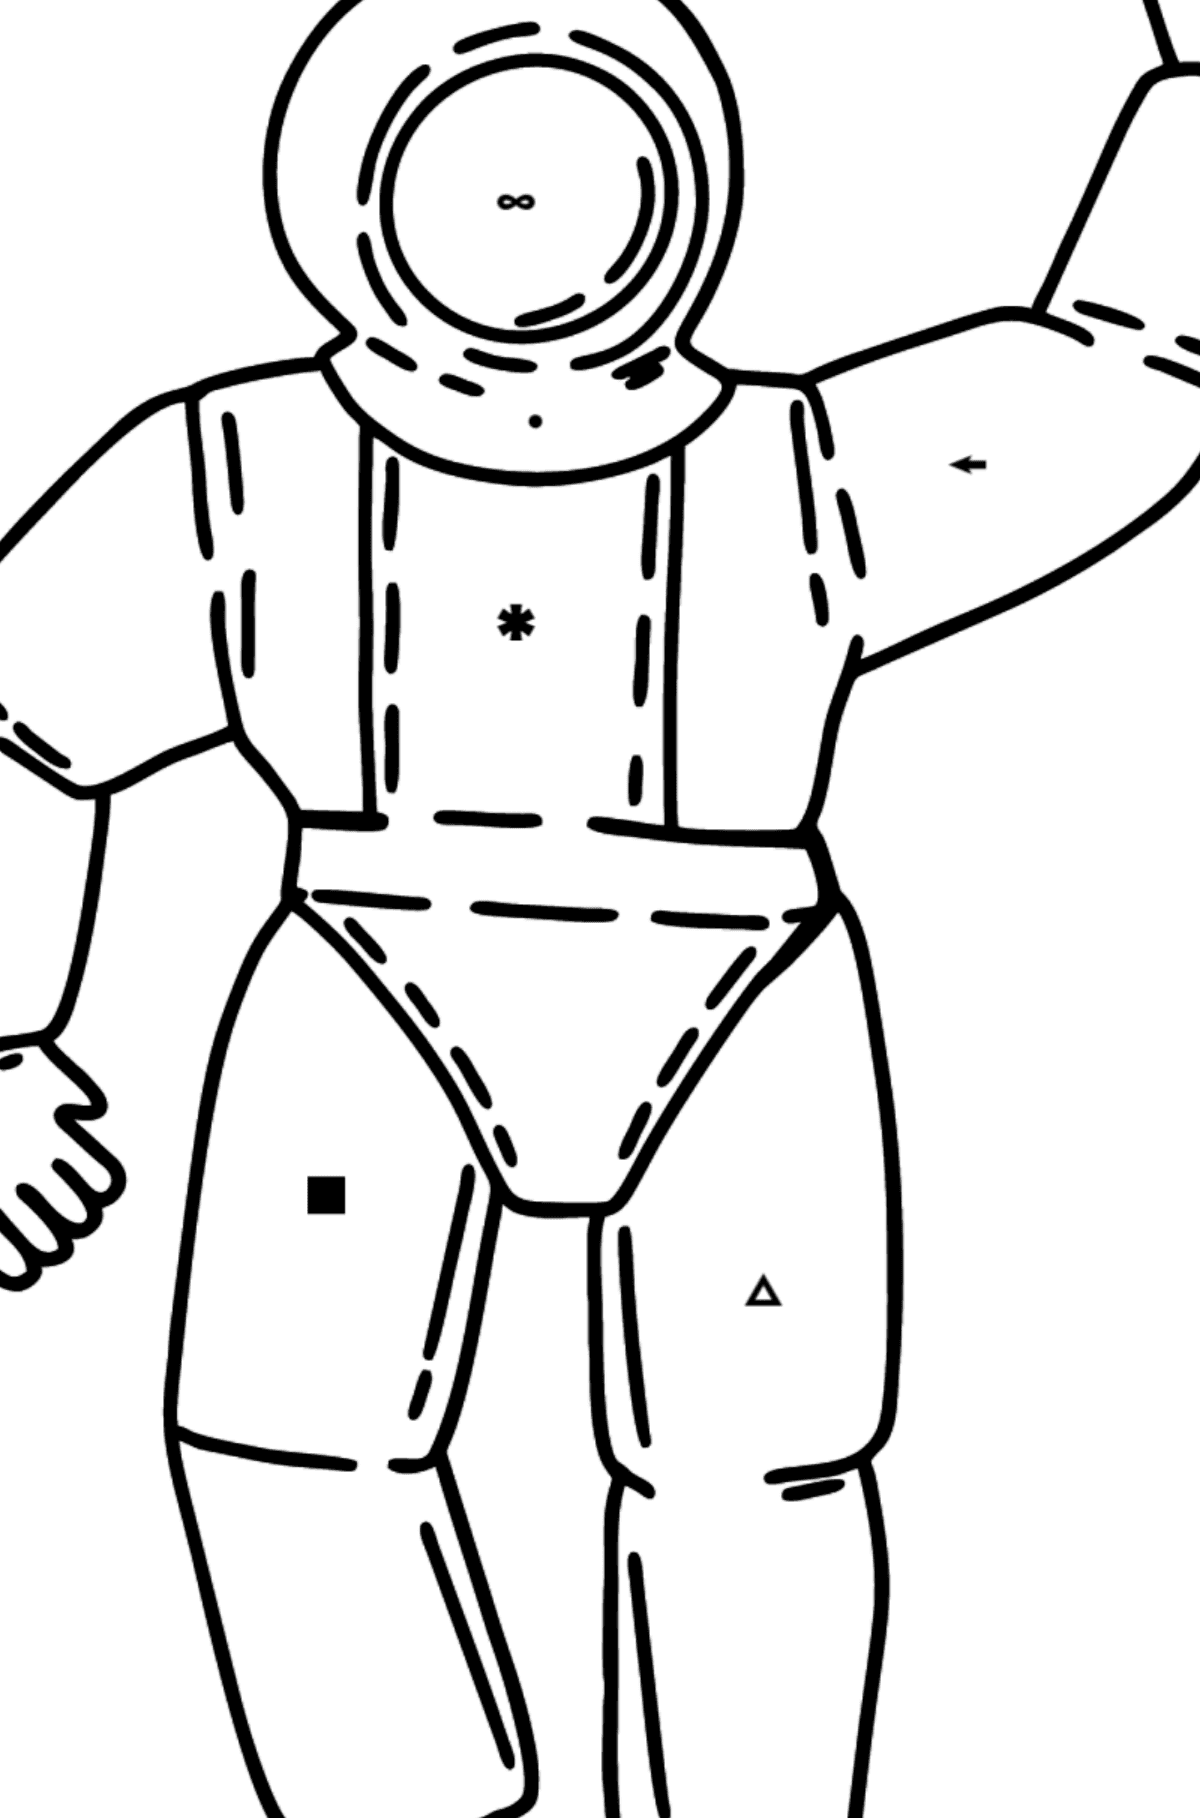 Astronaut coloring page - Coloring by Symbols for Kids